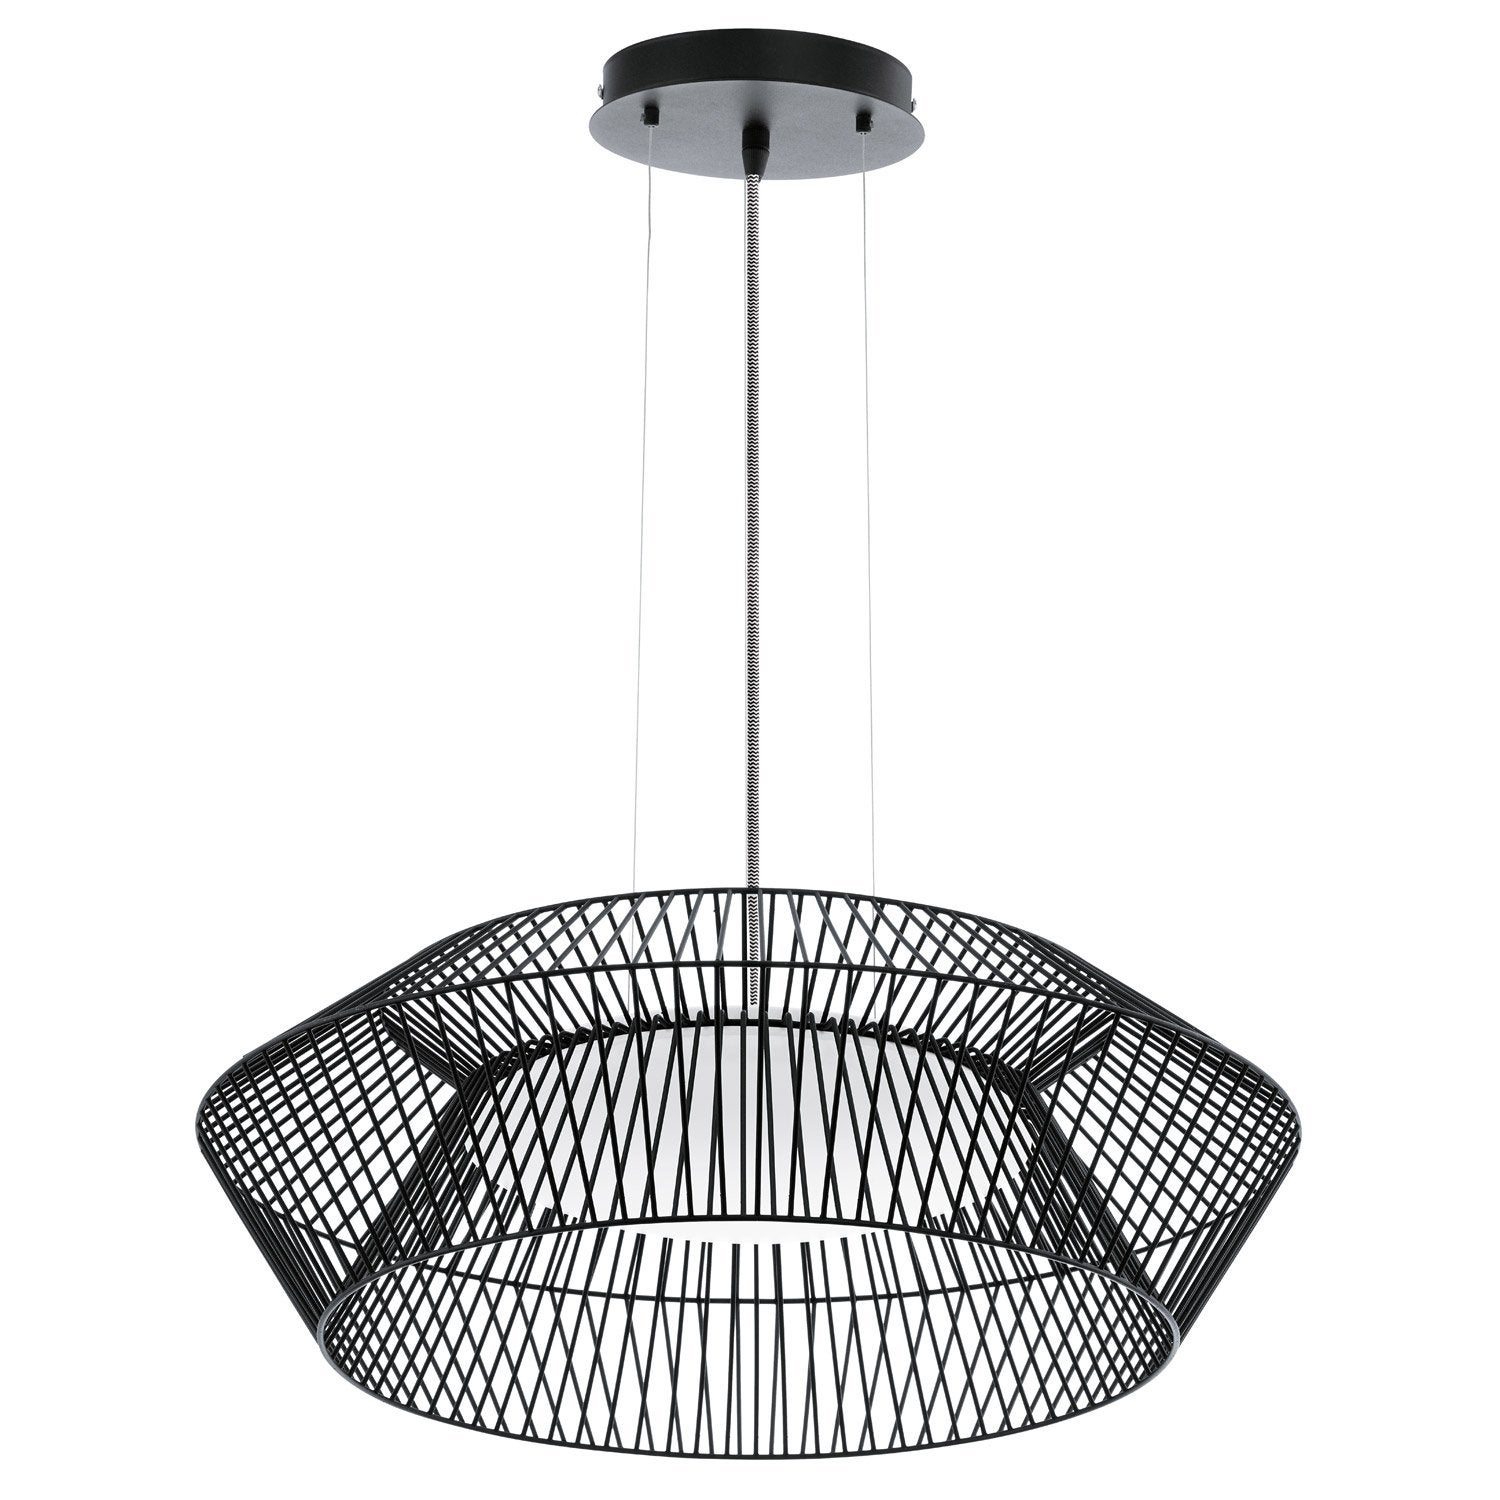 Suspension design piastre m tal noir 1 x 18 w eglo leroy merlin - Suspension new york leroy merlin ...